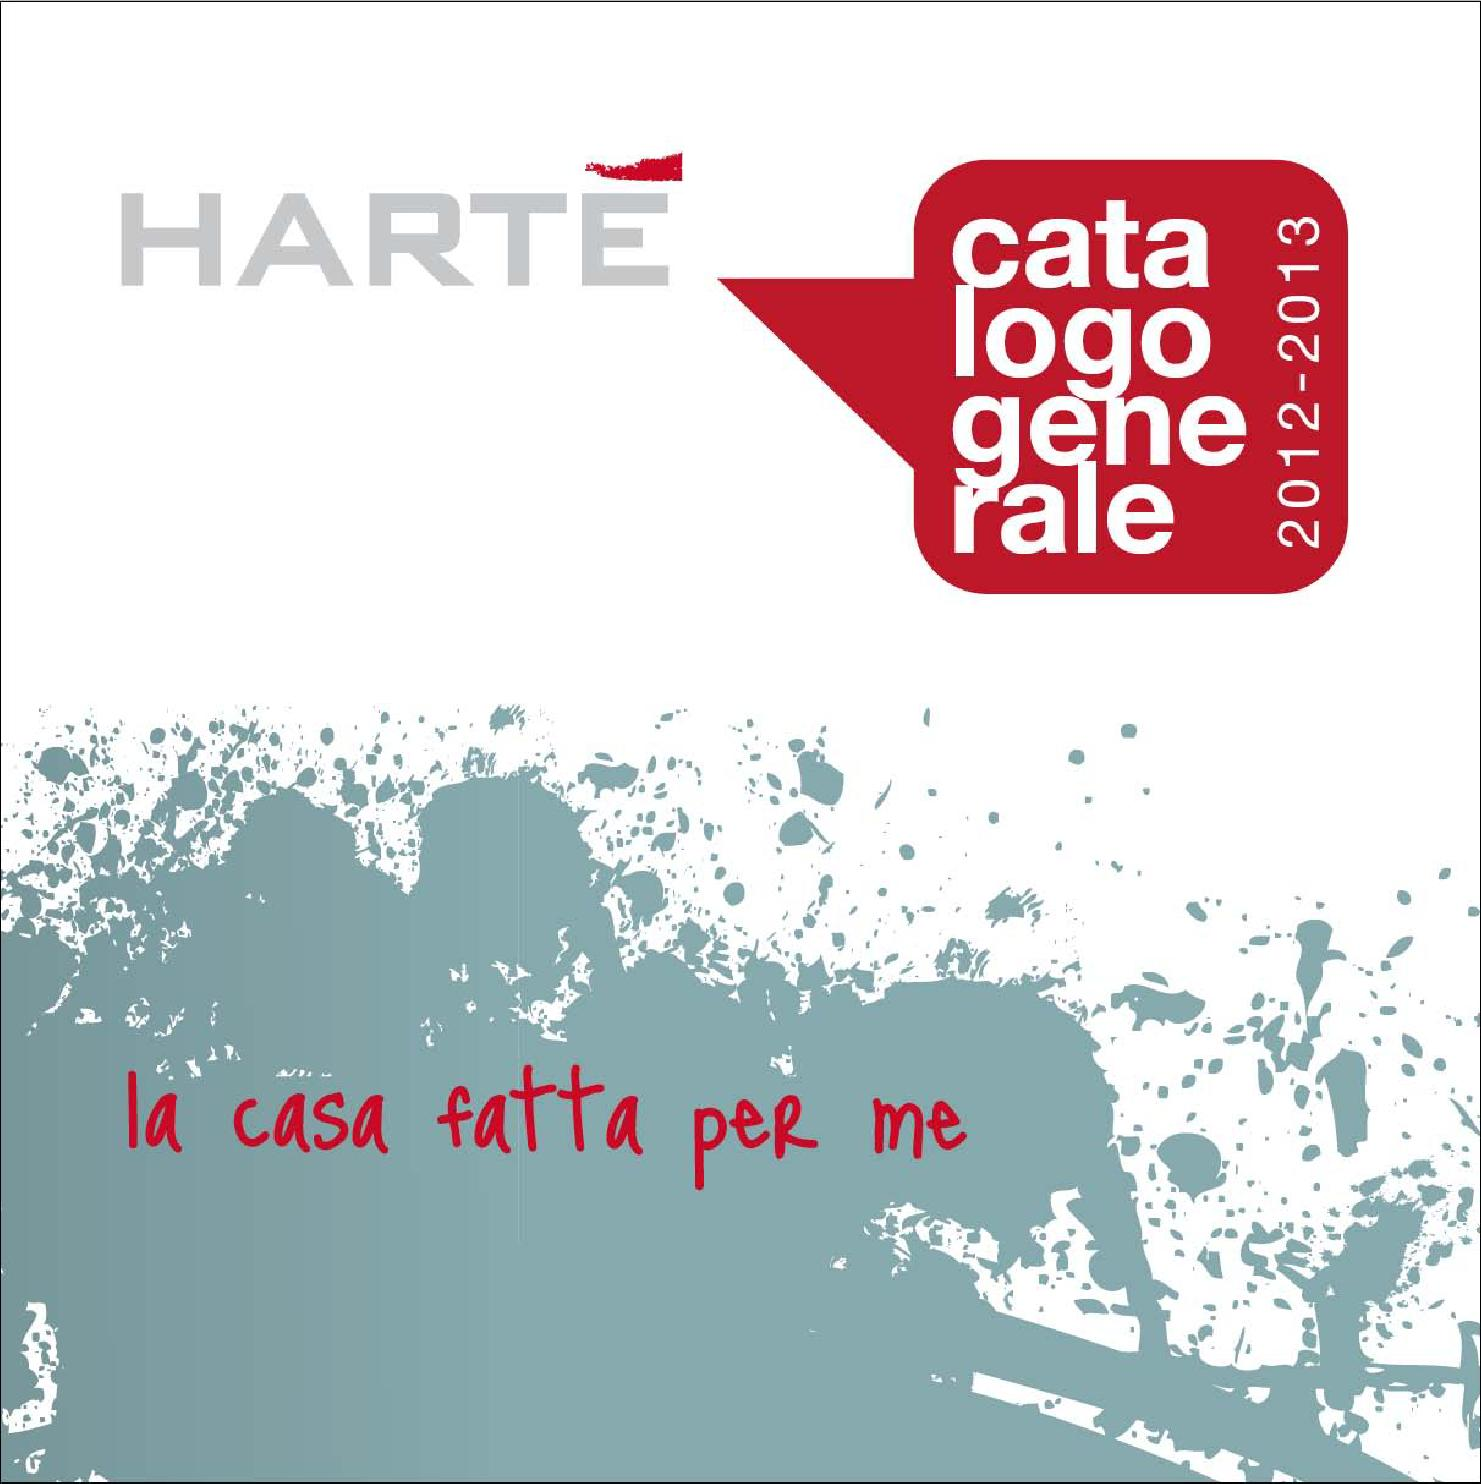 Harte 39 arredamenti by harte 39 issuu for Harte arredamenti